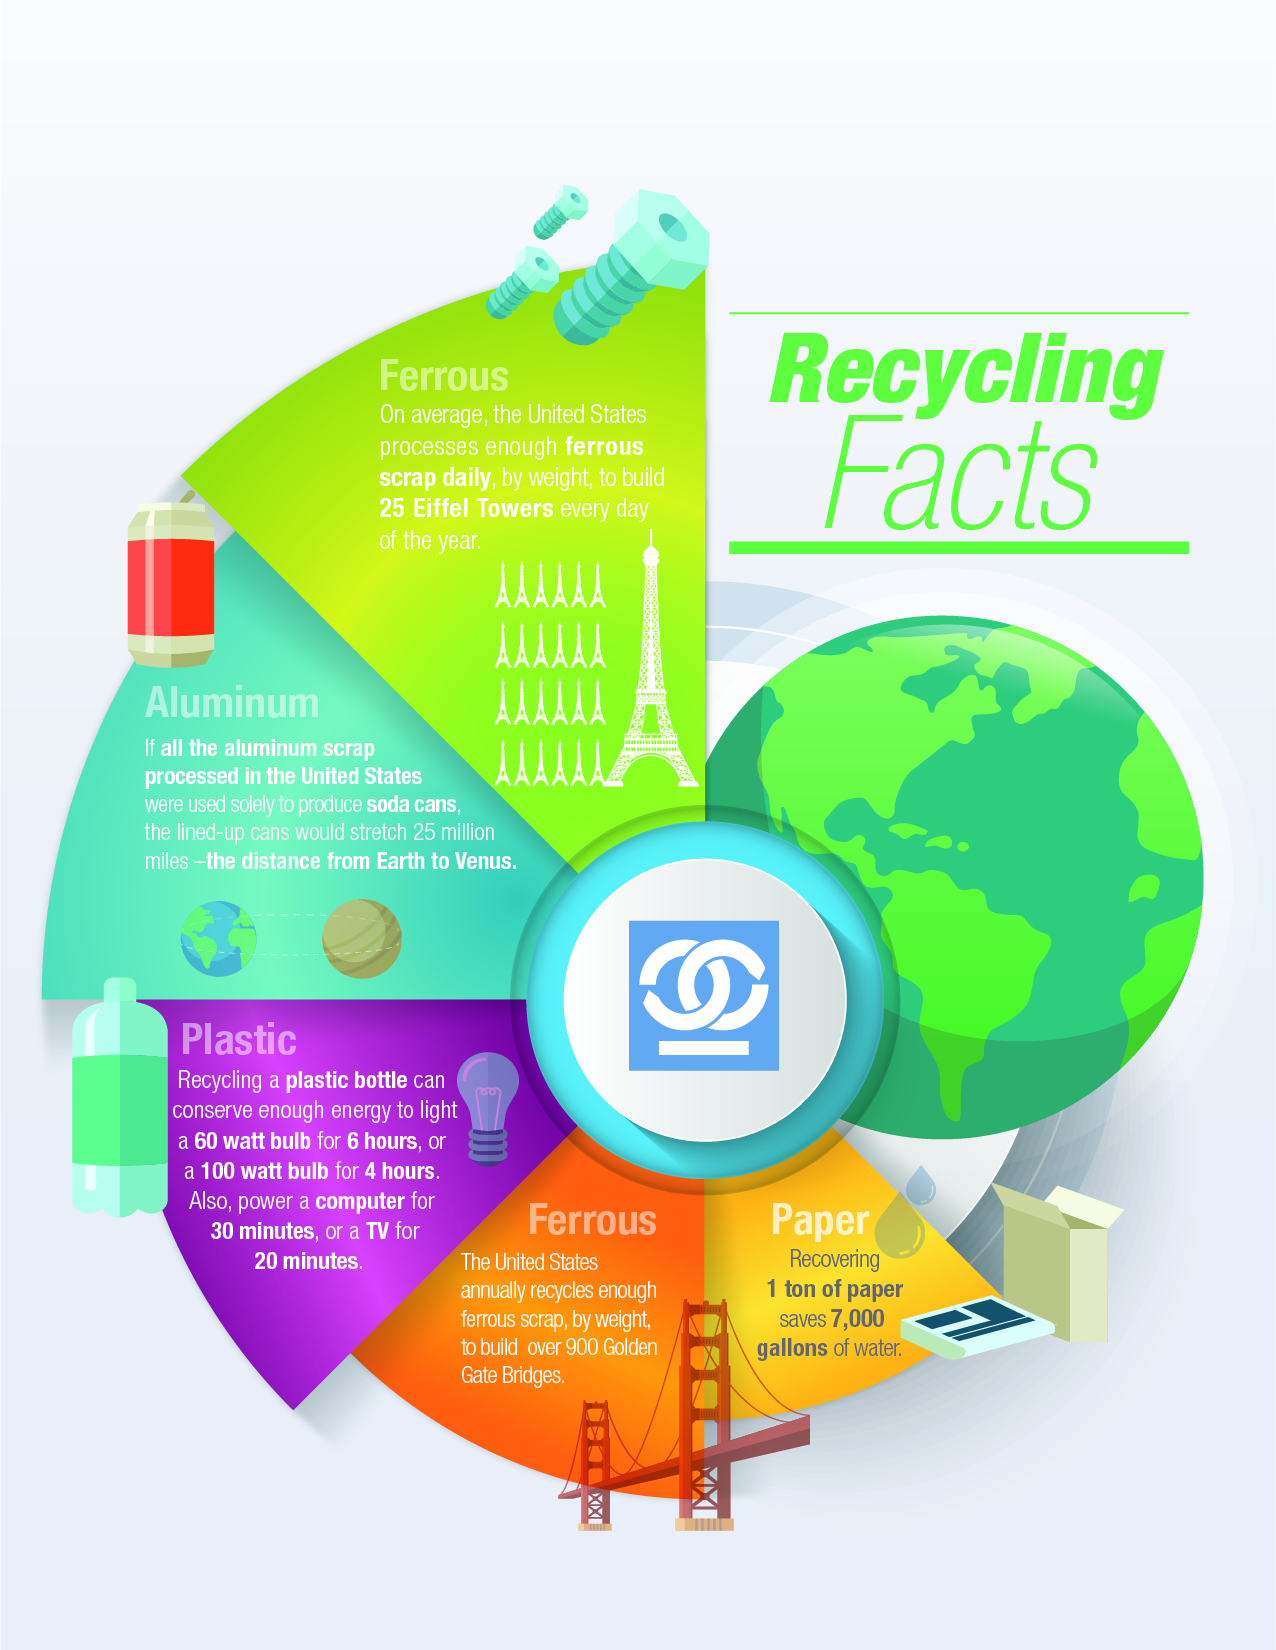 recycling facts for paper, ferrous, plastic, aluminum